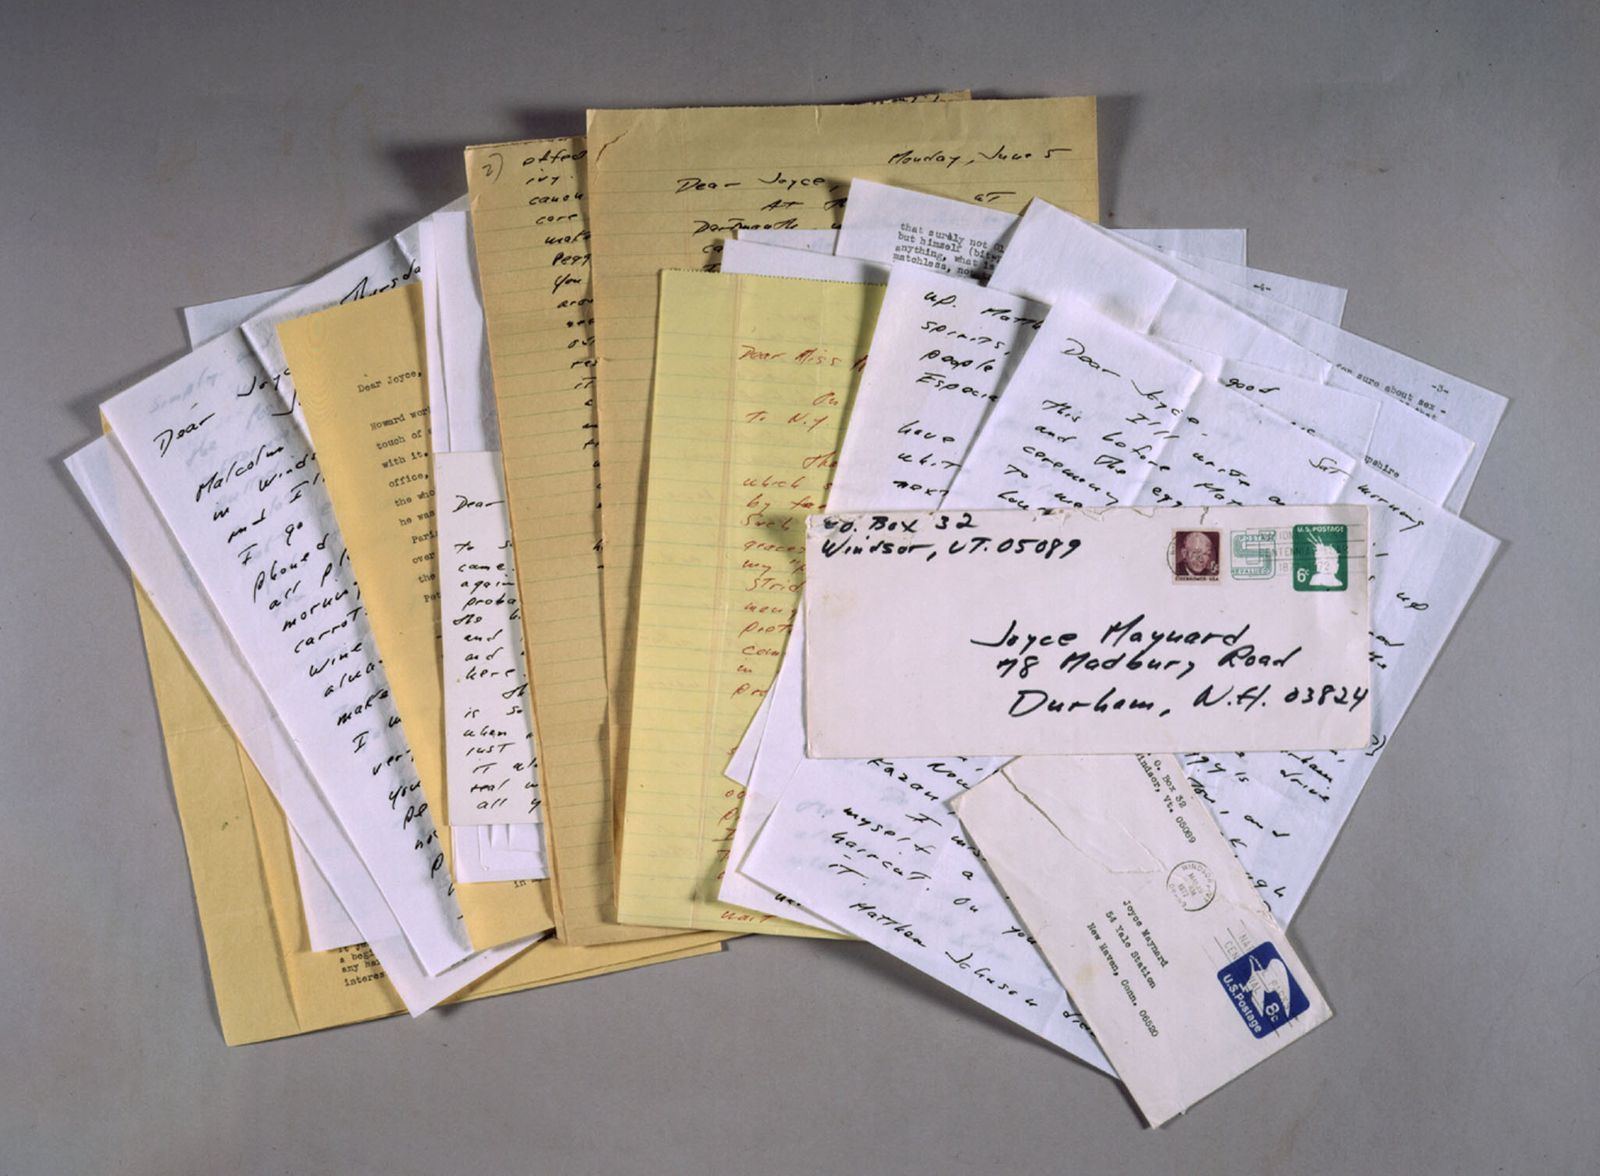 A photograph of love letters reclusive author J.D. Salinger wrote to an 18-year-old woman with whom ..